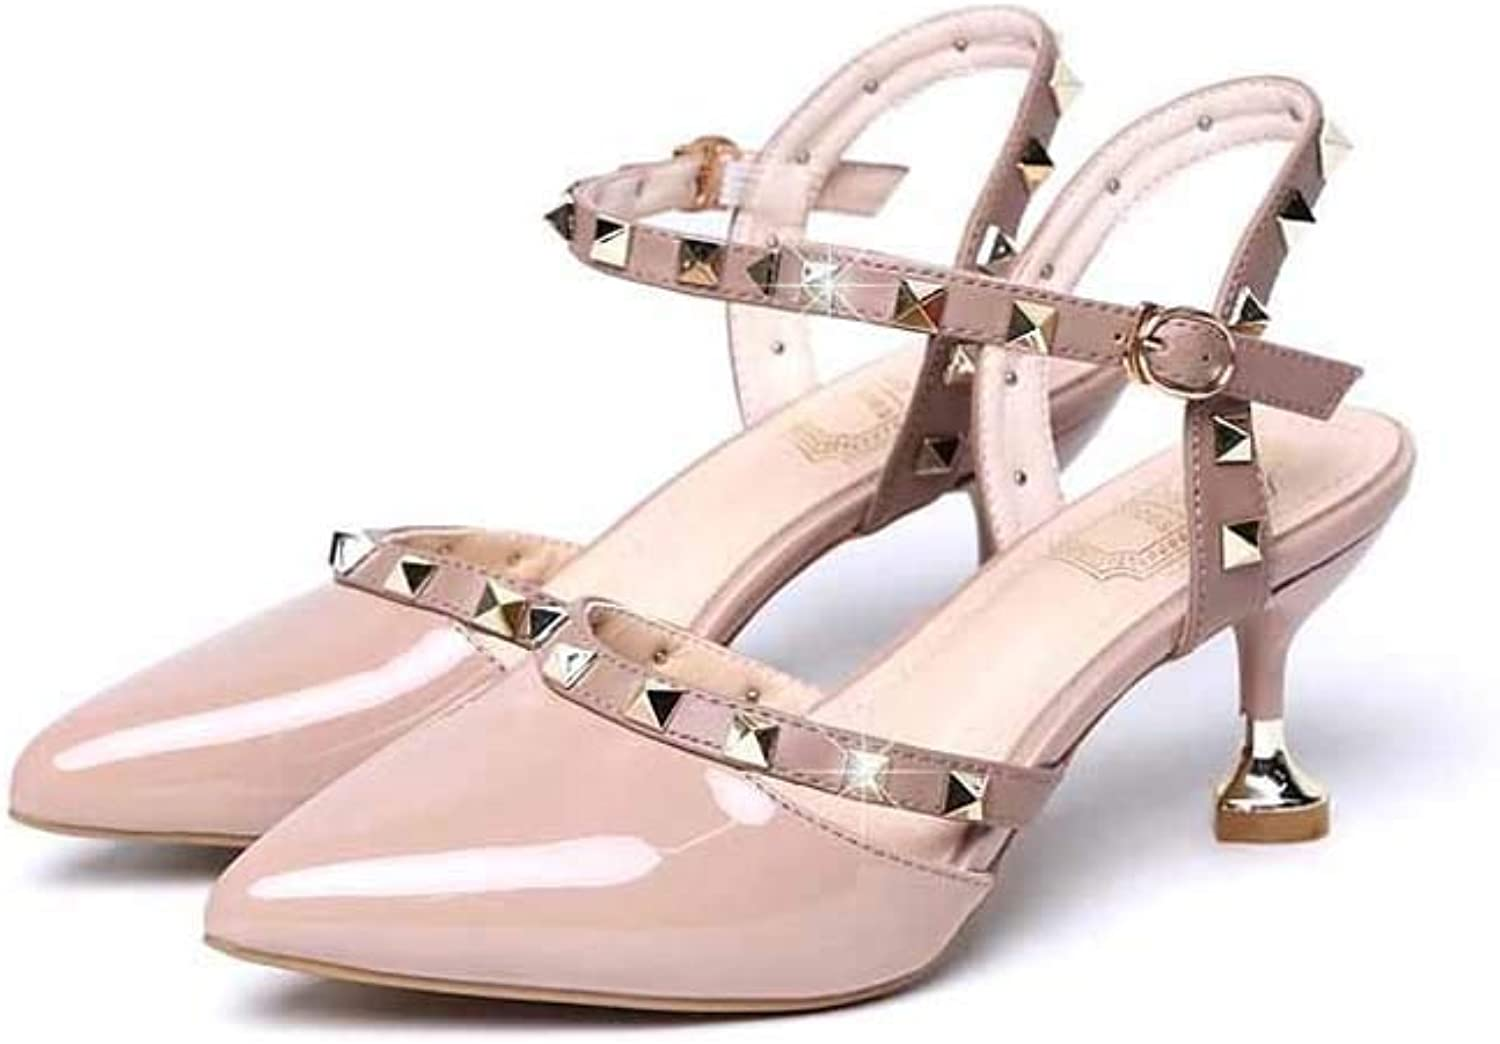 Women Pointed Studded Stiletto Heel Court shoes,Ladies Party T-Bar Ankle Strap Mid Kitten Heel Party Sandals